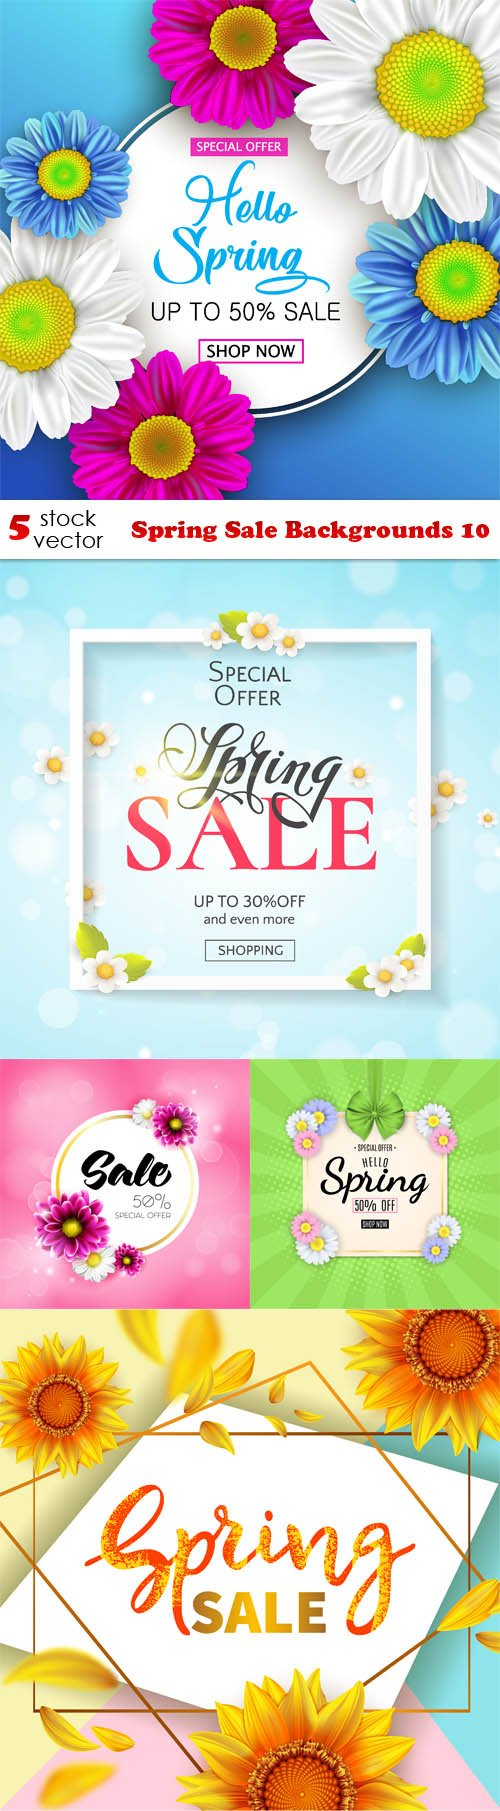 Vectors - Spring Sale Backgrounds 10